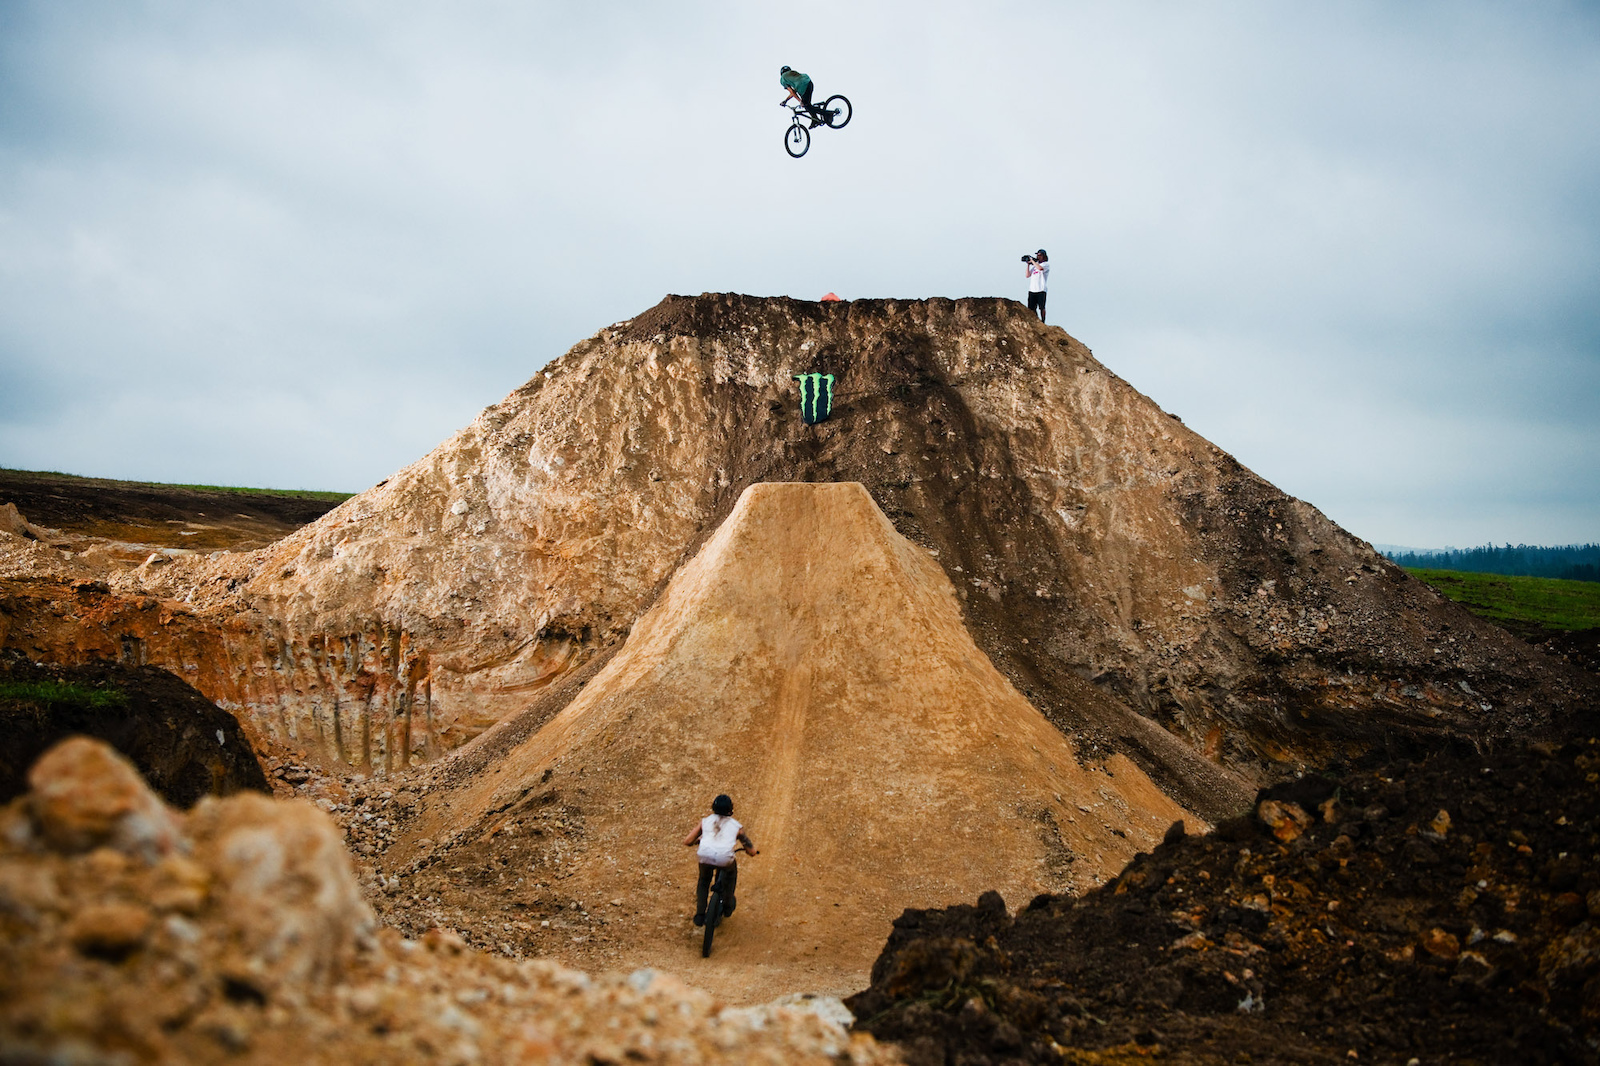 The search for the ultimate whip as we all know is a quest that all men strive for and whipping this jump was an incredible sensation. Throwing my bike past 90 up there really excelled my wildest dreams Matt down there 40ft below ready to crank one out too.